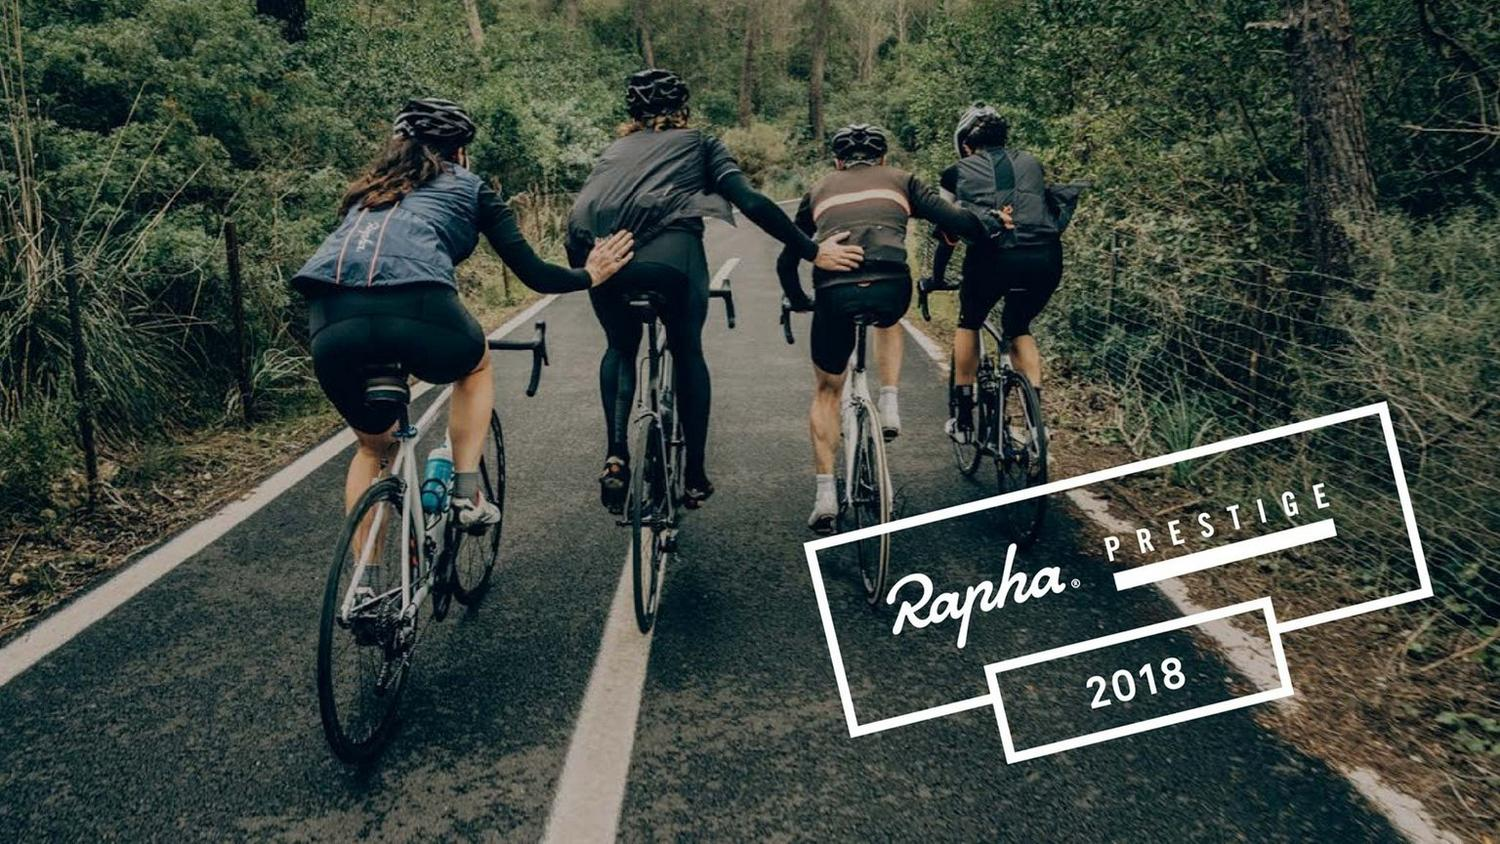 The Rapha Prestige Landing page